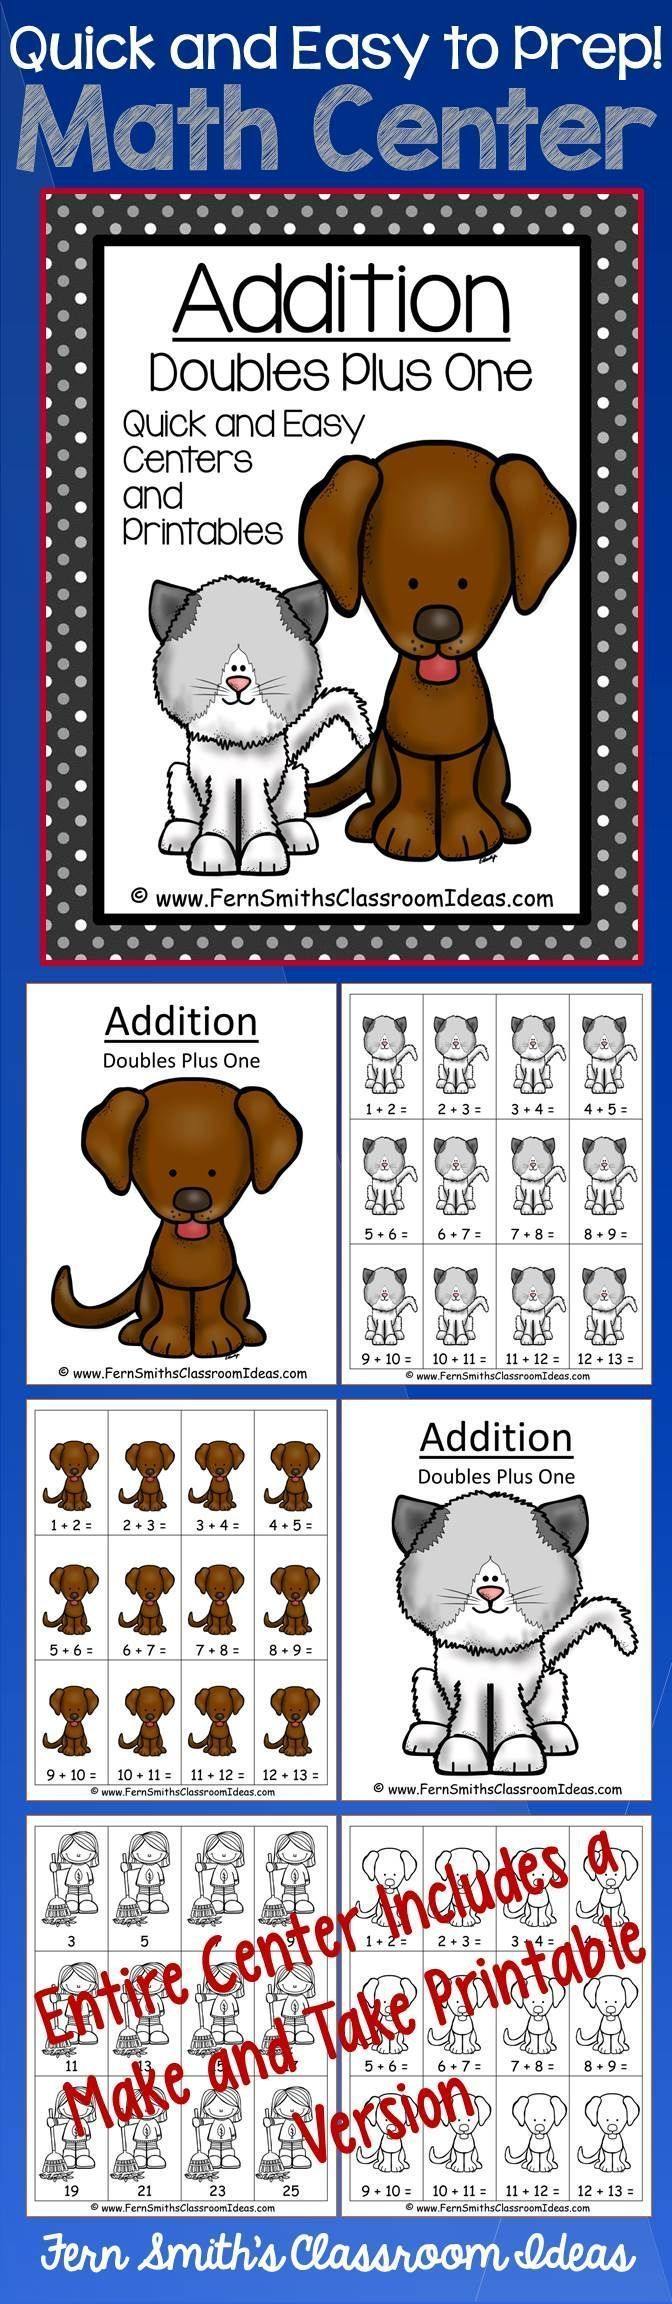 Quick and Easy to Prep Addition Doubles Plus One - Kittens and Puppies Centers and Printables #TPT $Paid